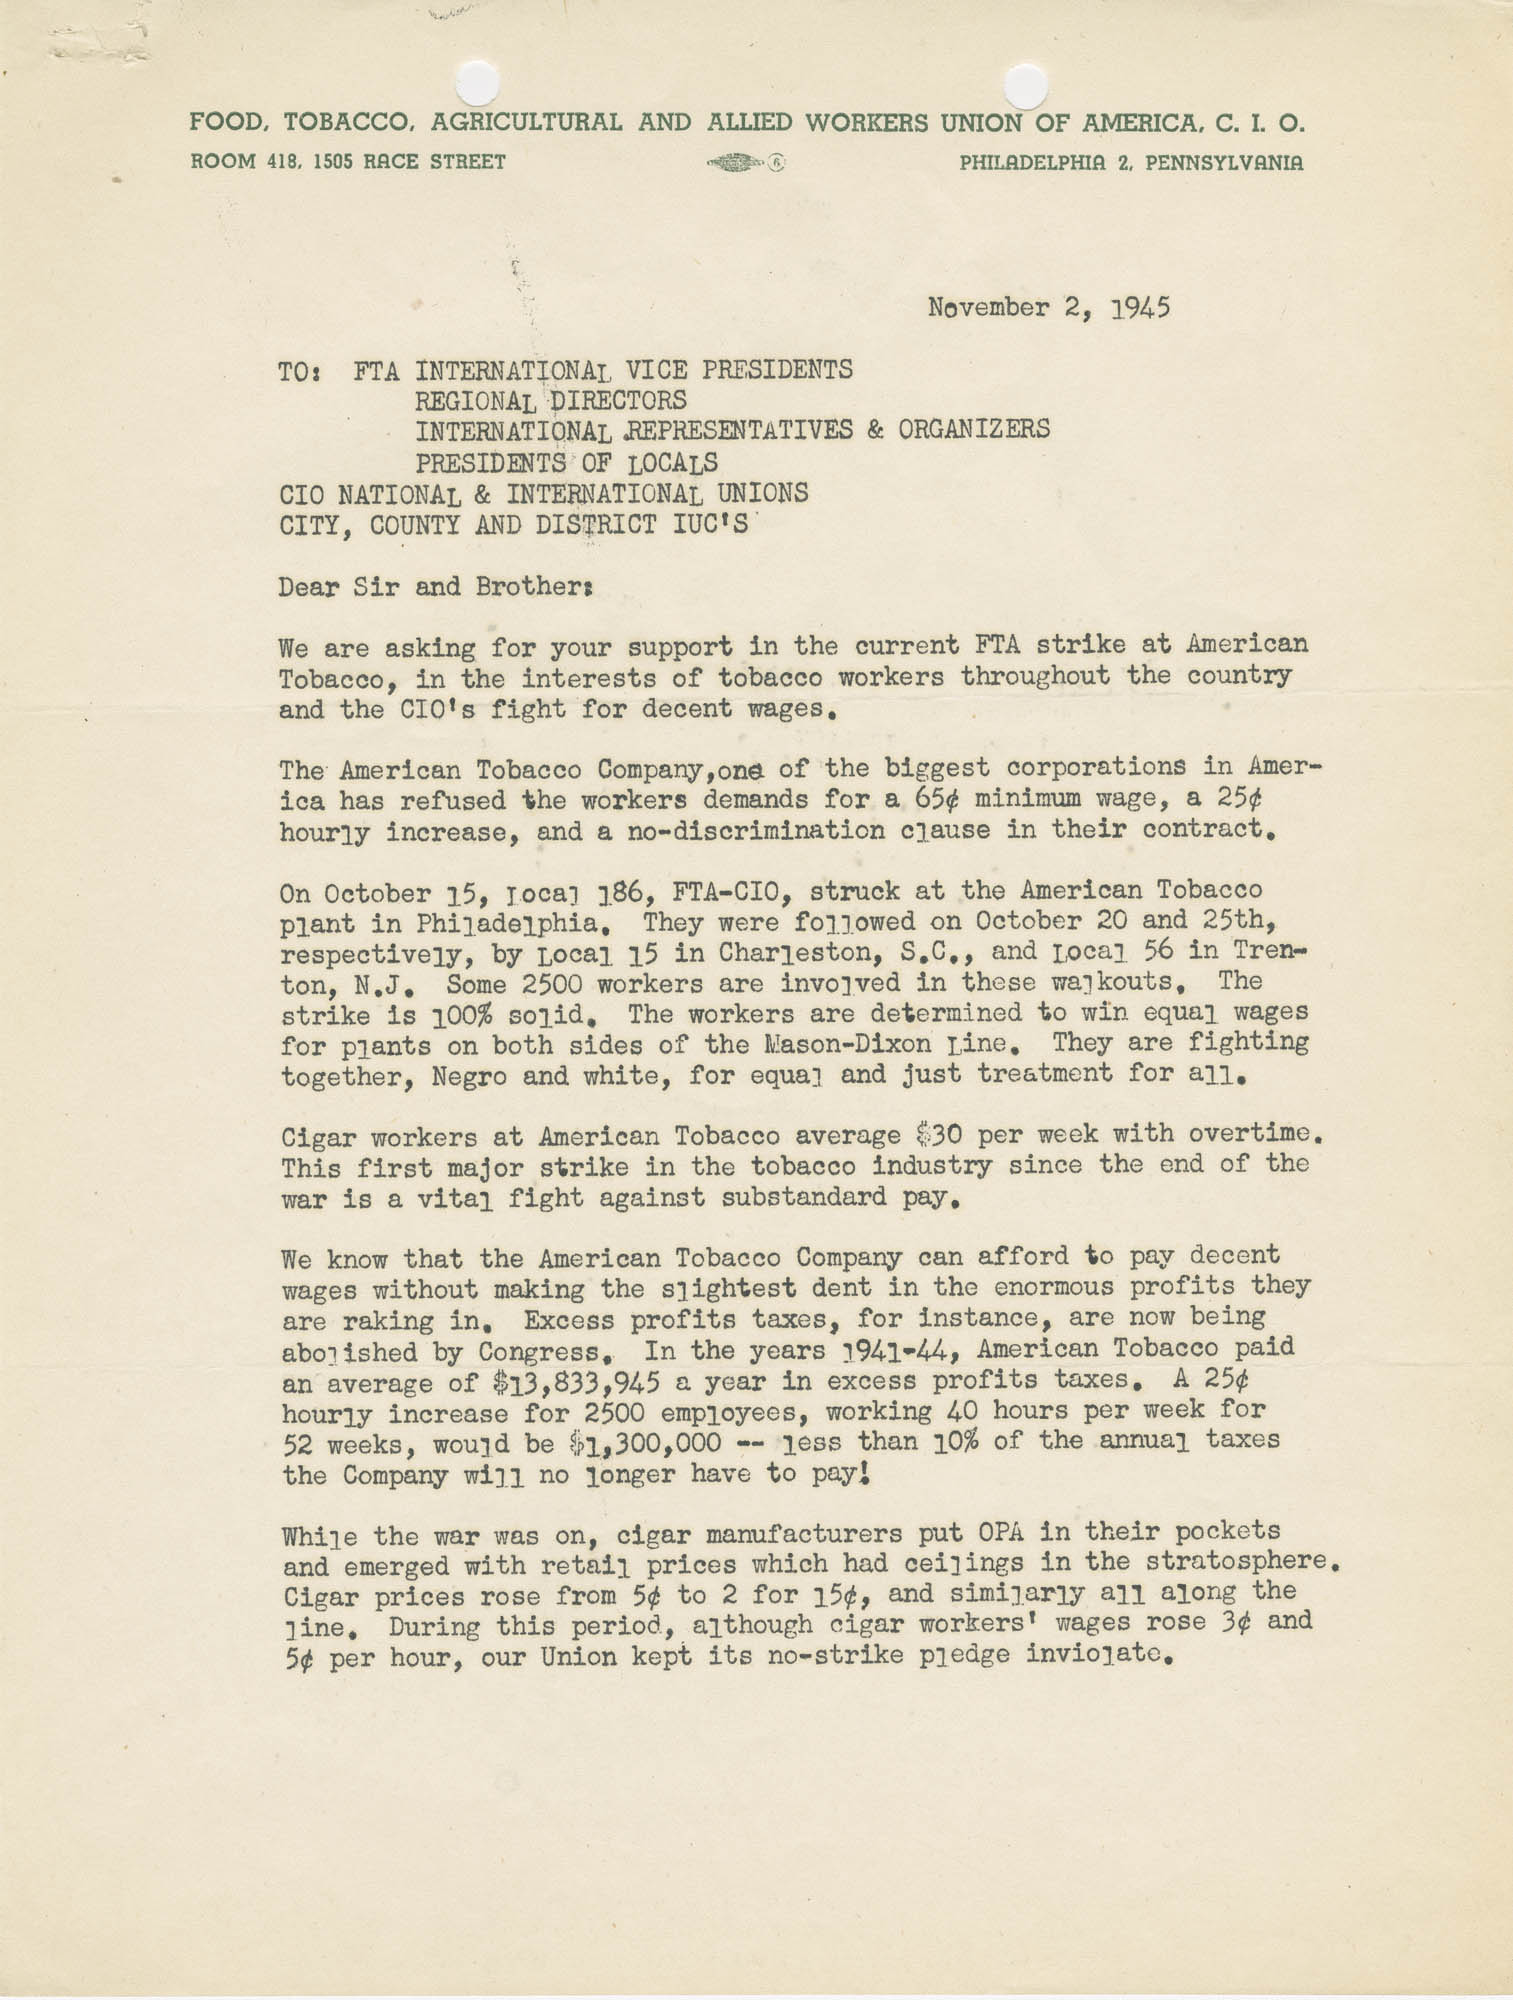 Letter from Harold J. Lane detailing strike activities against the American Tobacco Company